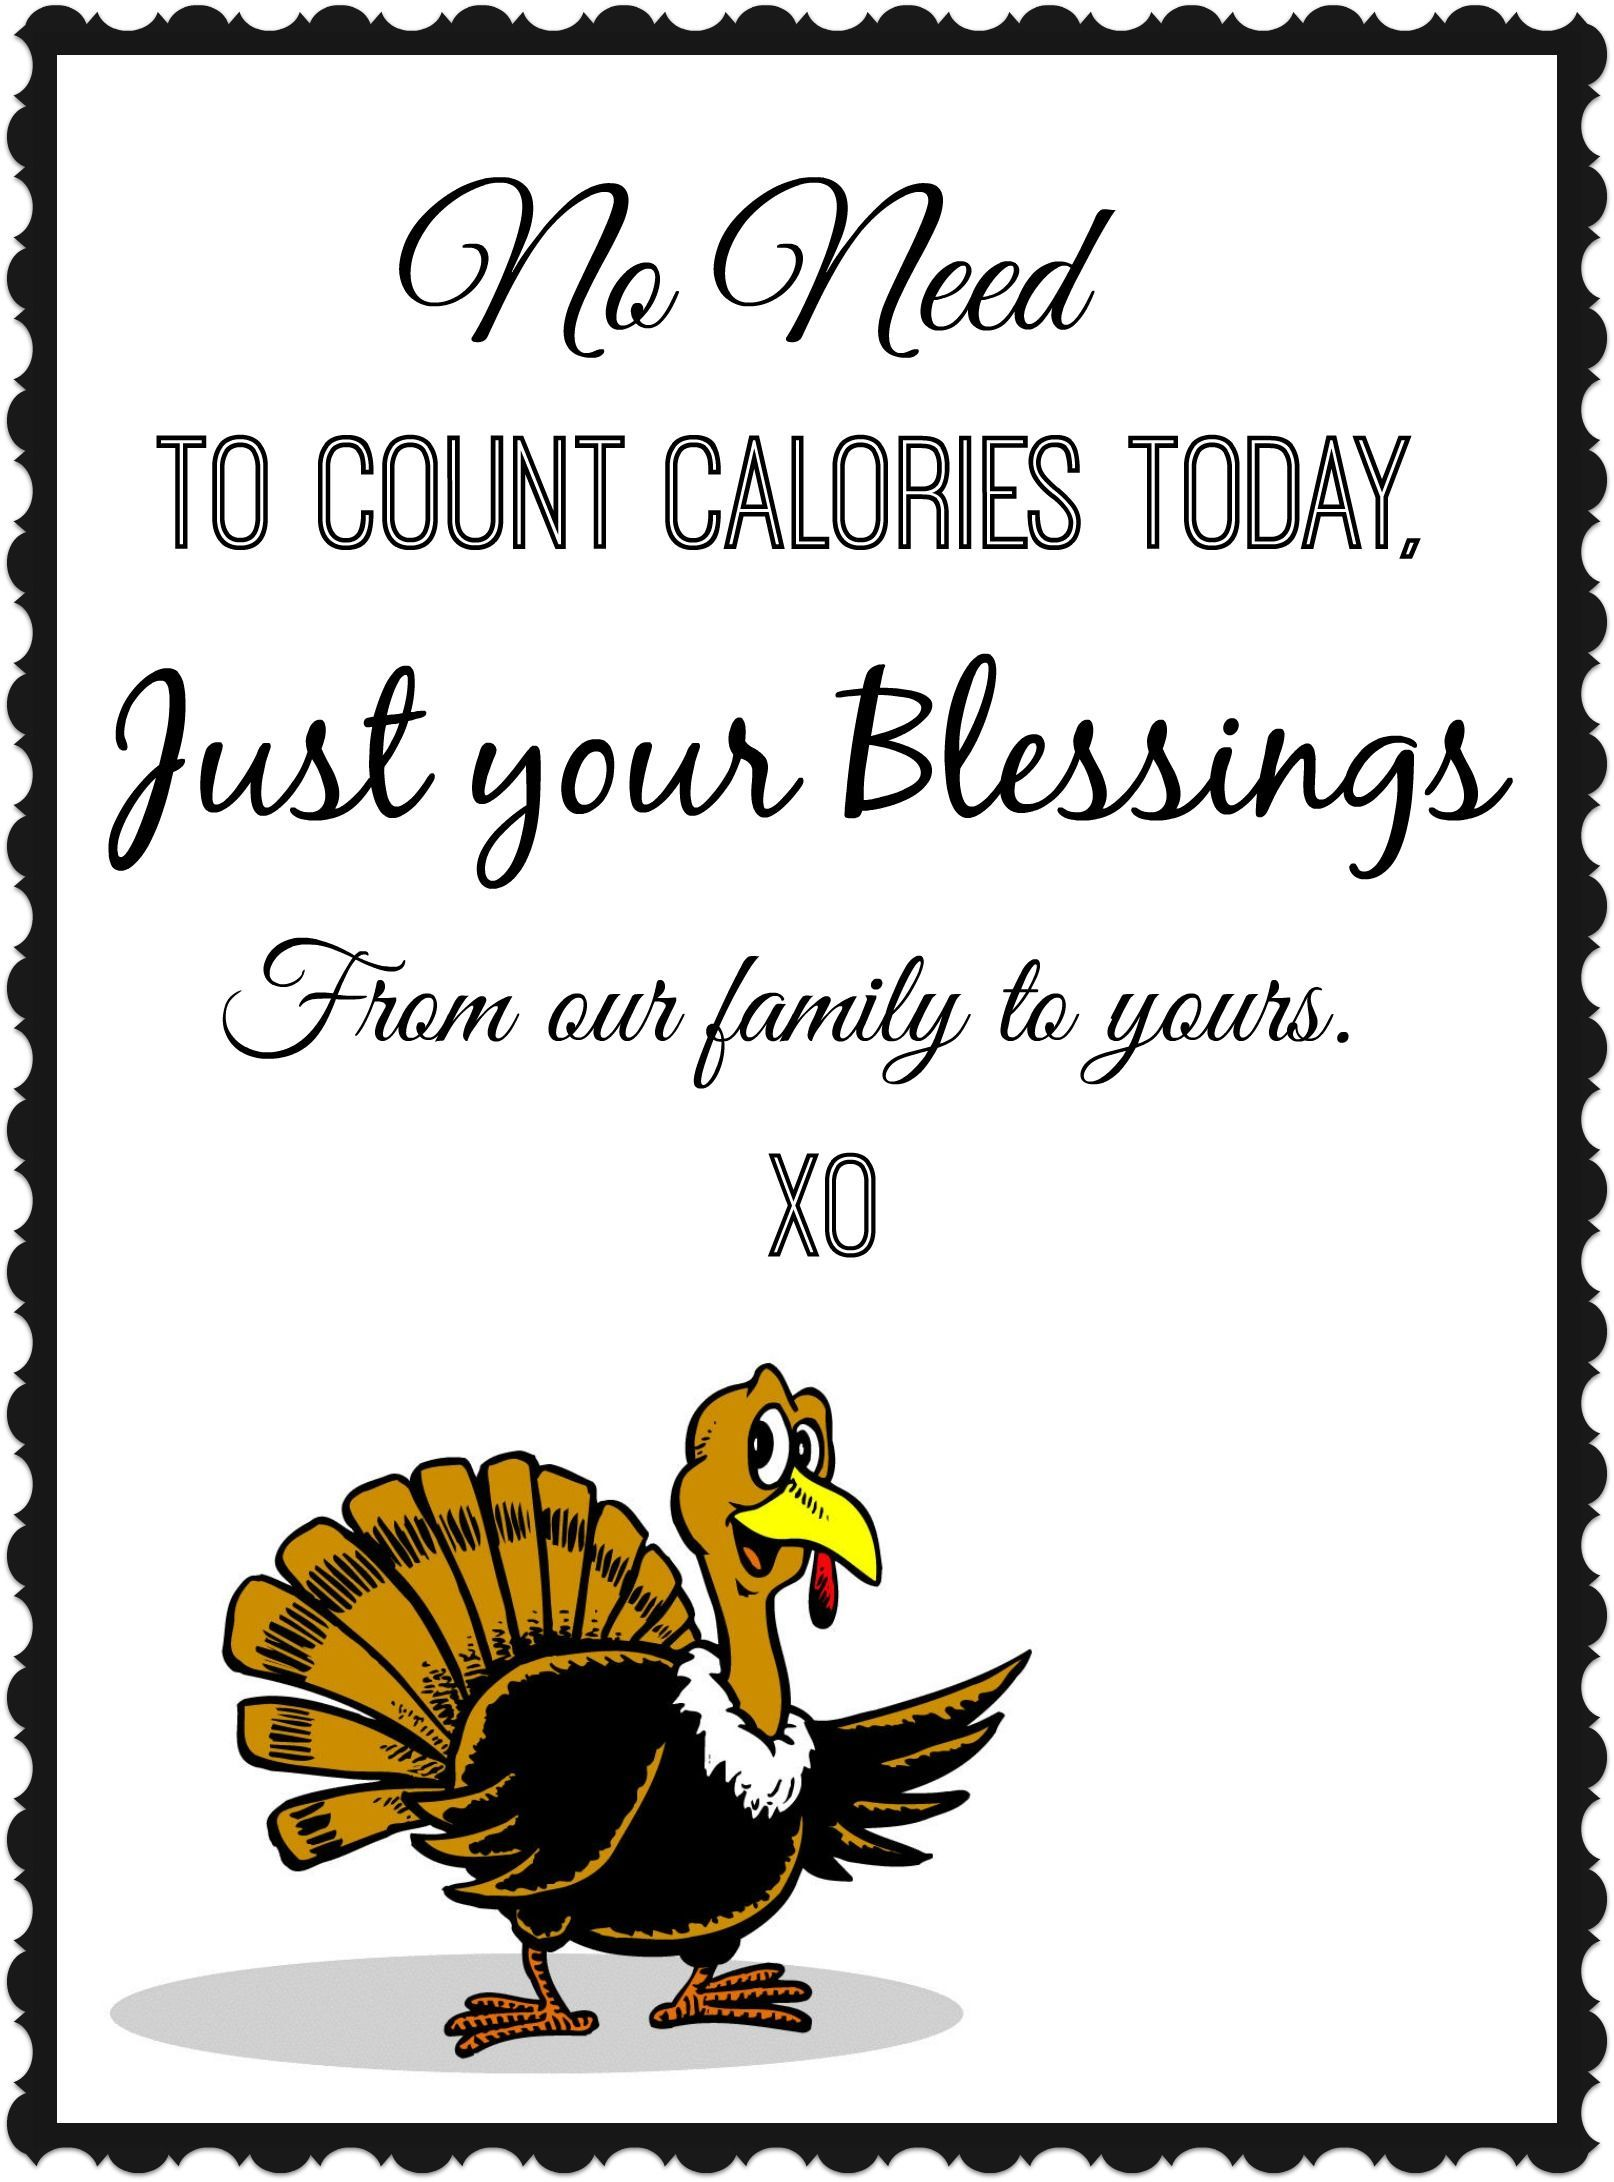 Gallant Count Your Blessings Thanksgiving Thanksgiving S Thanksgiving Quoteshappy Thanksgiving Quotes Quotes Thanksgiving Thanksgivingquotes Count Your Blessings Thanksgiving Thanksgiving S Thanksgivi inspiration Happy Thanksgiving Quotes